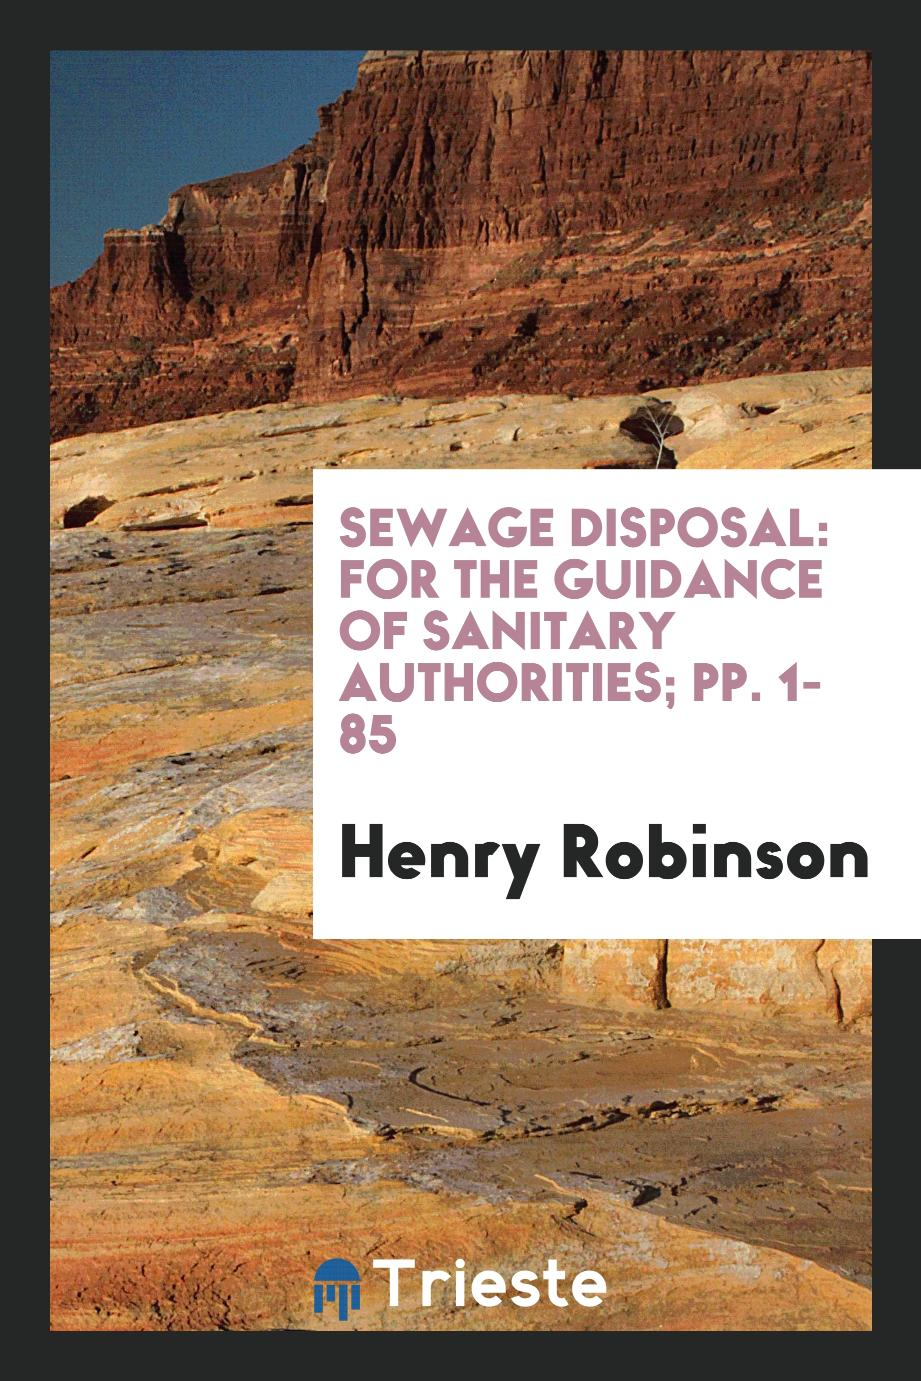 Sewage Disposal: For the Guidance of Sanitary Authorities; pp. 1-85